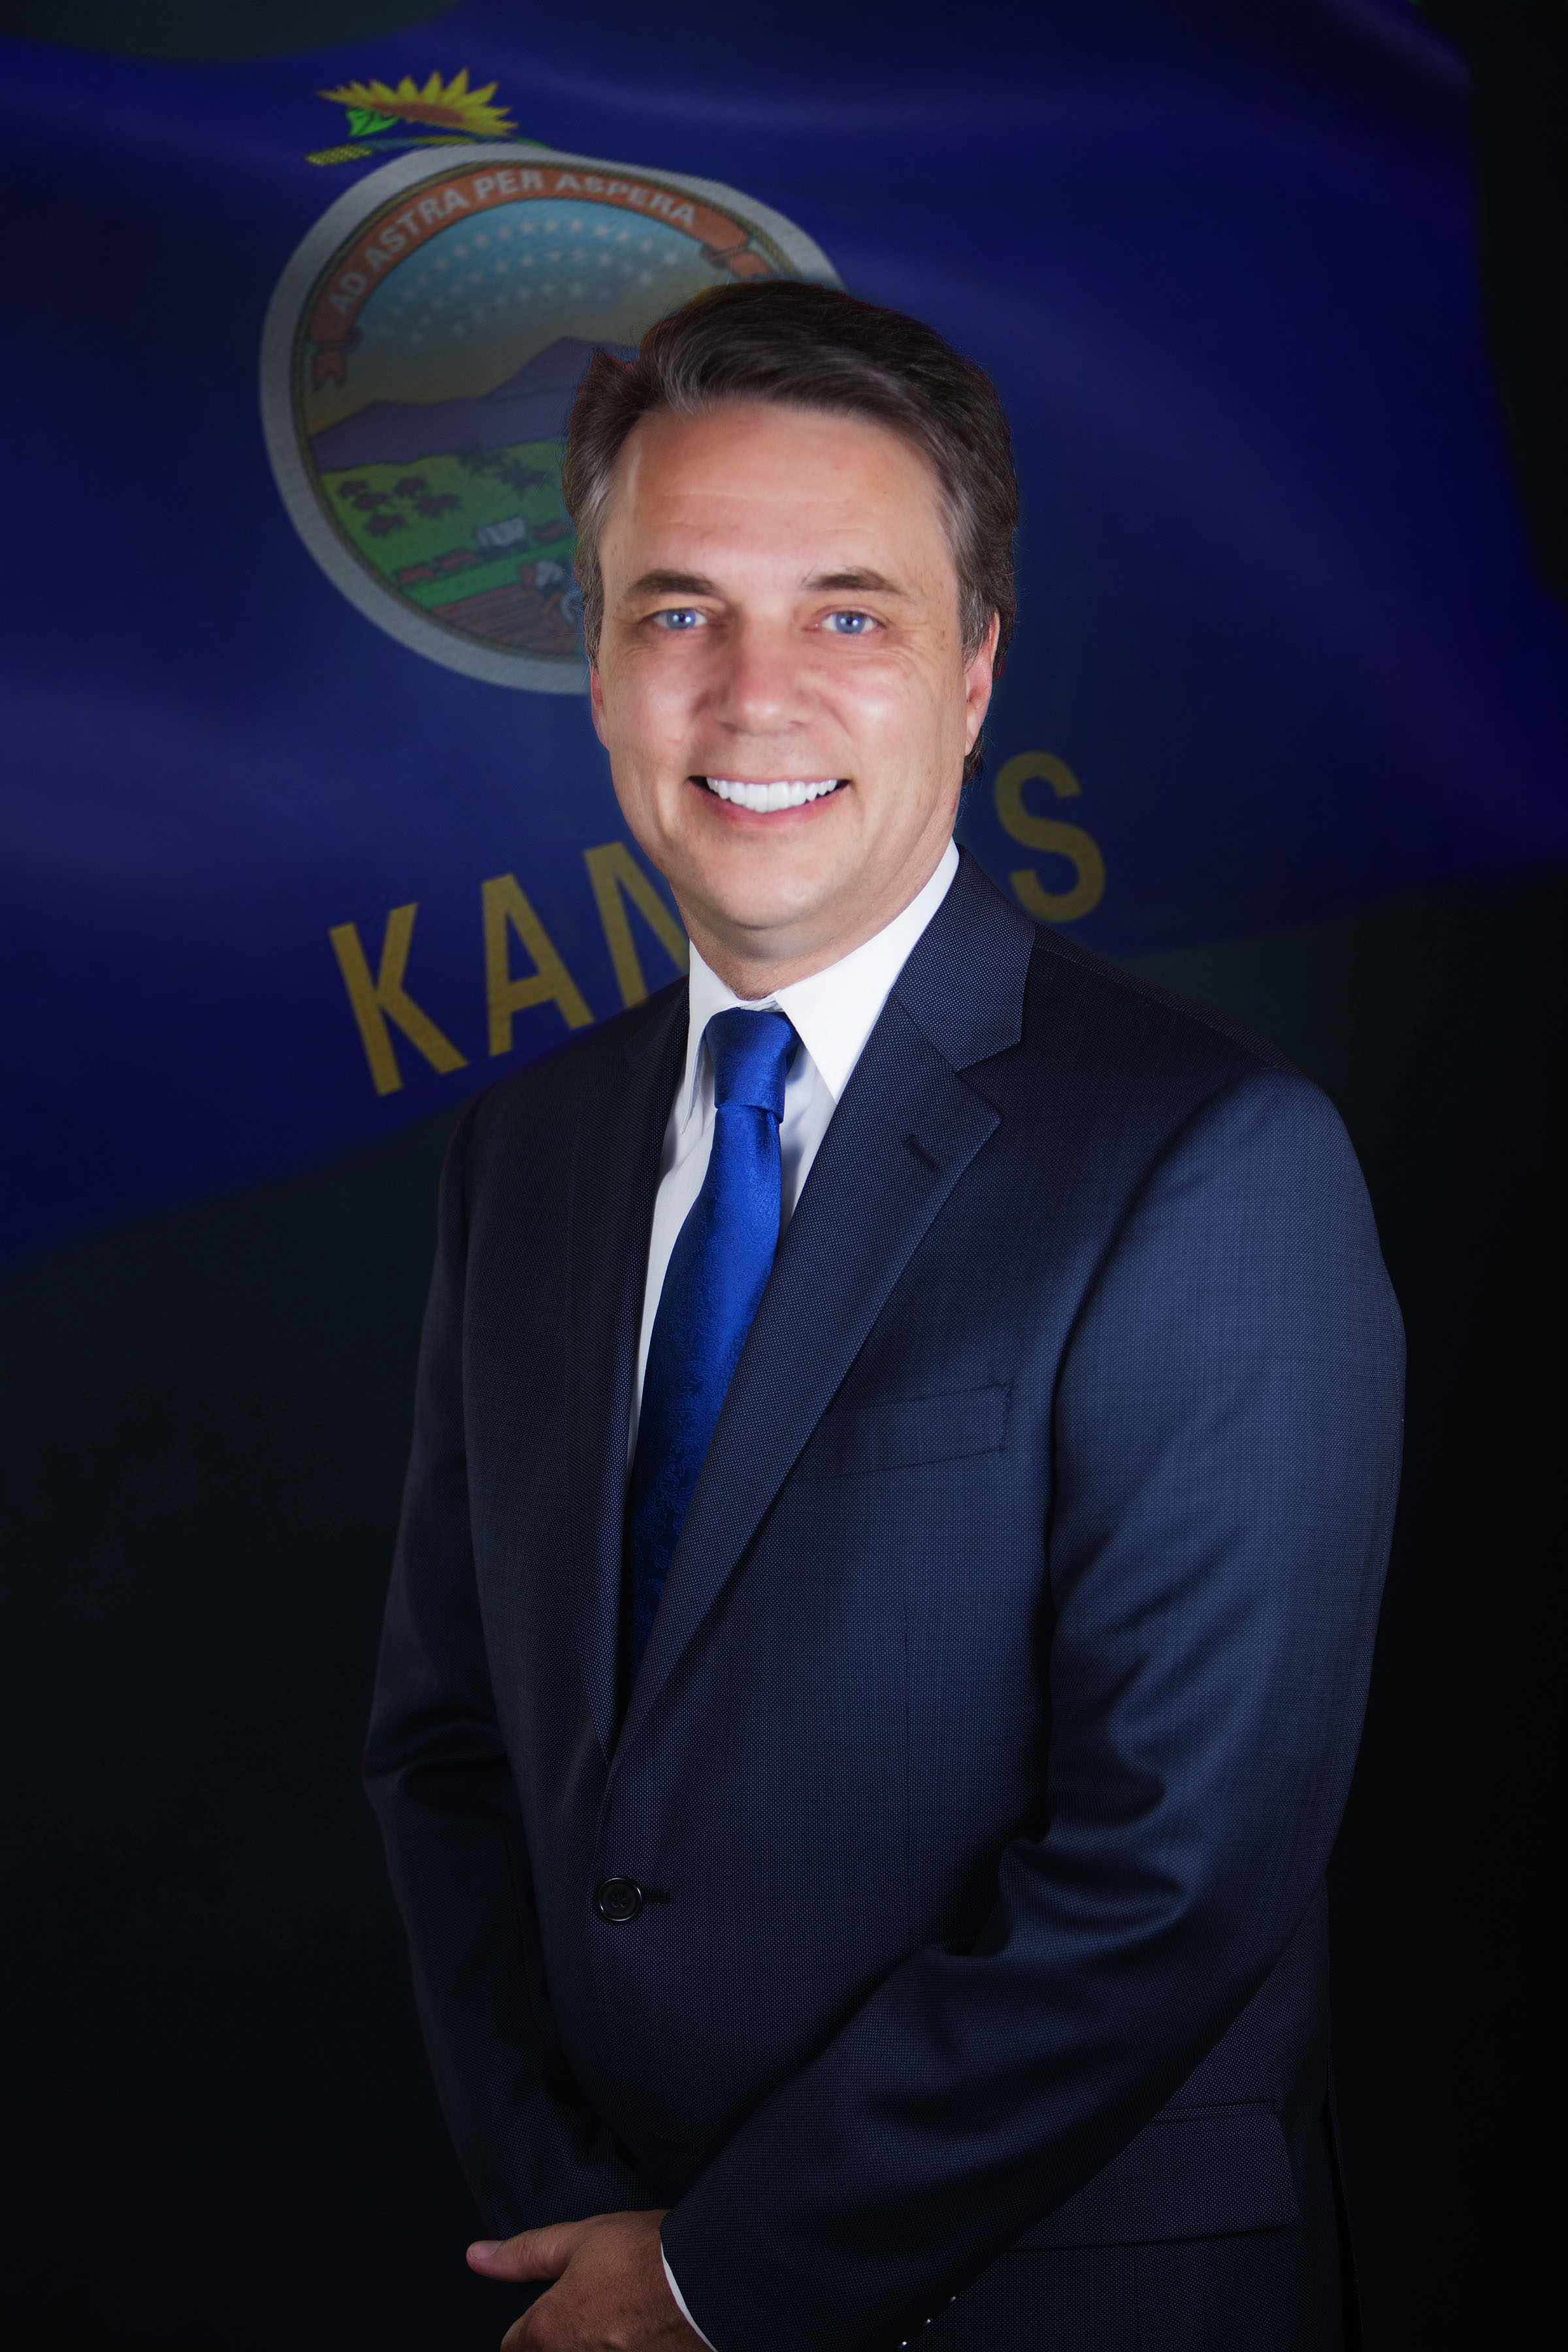 Jeff Colyer, M.D. Sworn in as 47th Governor of the State of Kansas